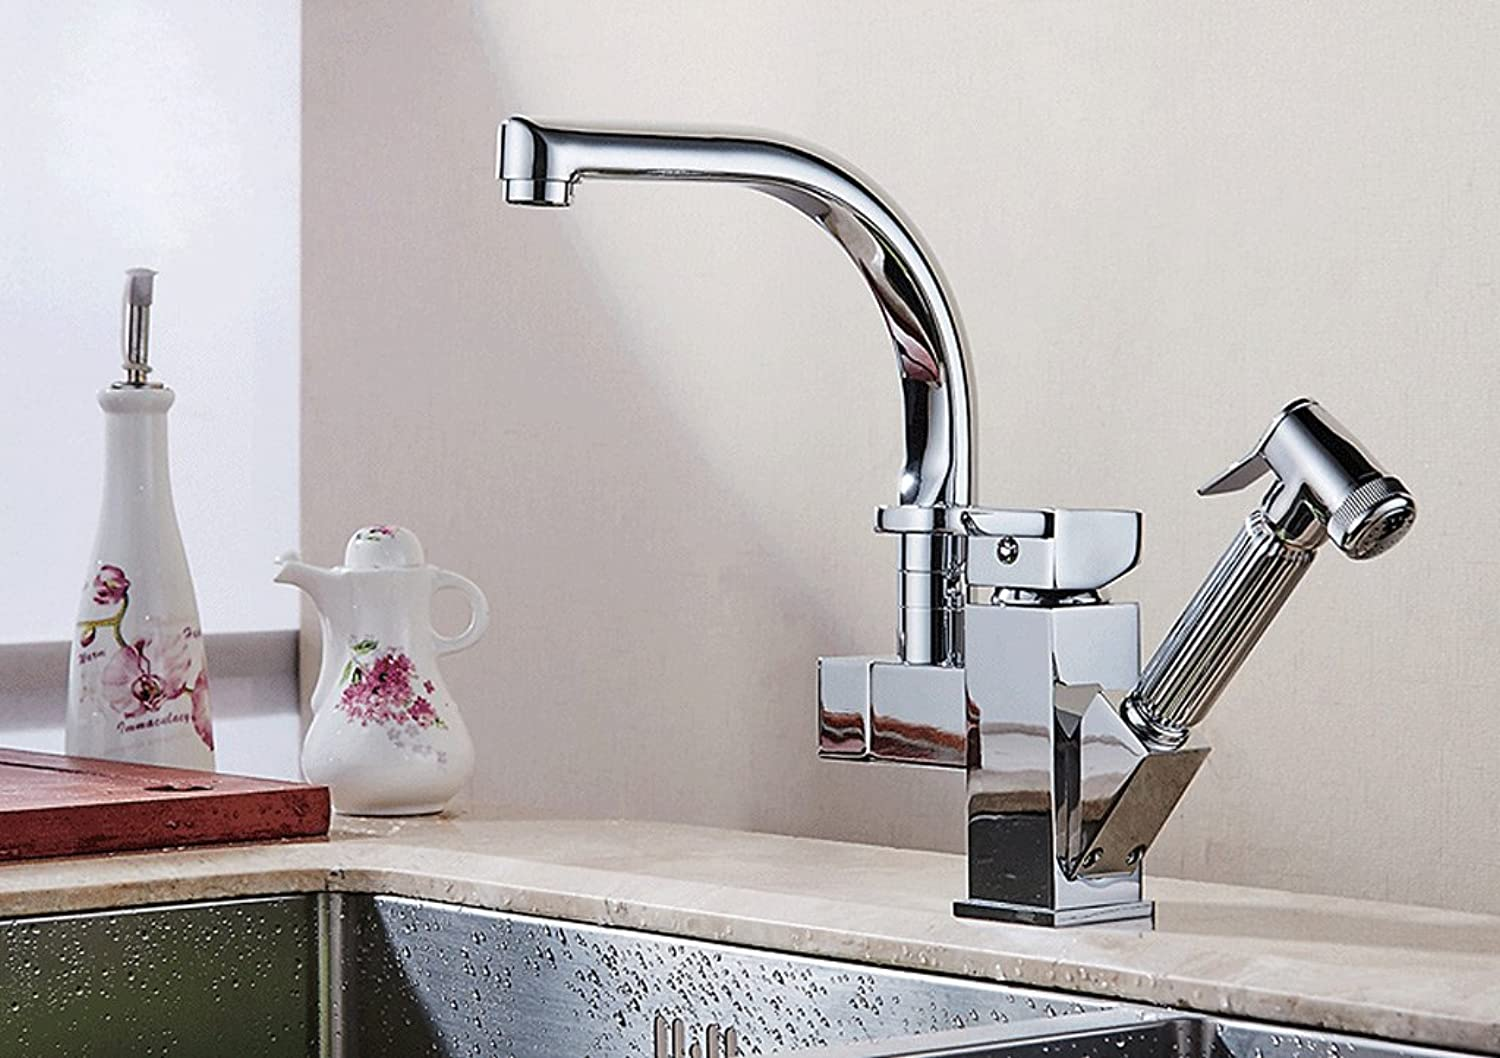 WTL Faucet Pull Type Faucet Hot And Cold Kitchen Vegetables Basin All Copper Stretch Shrink redatable Sink Faucet